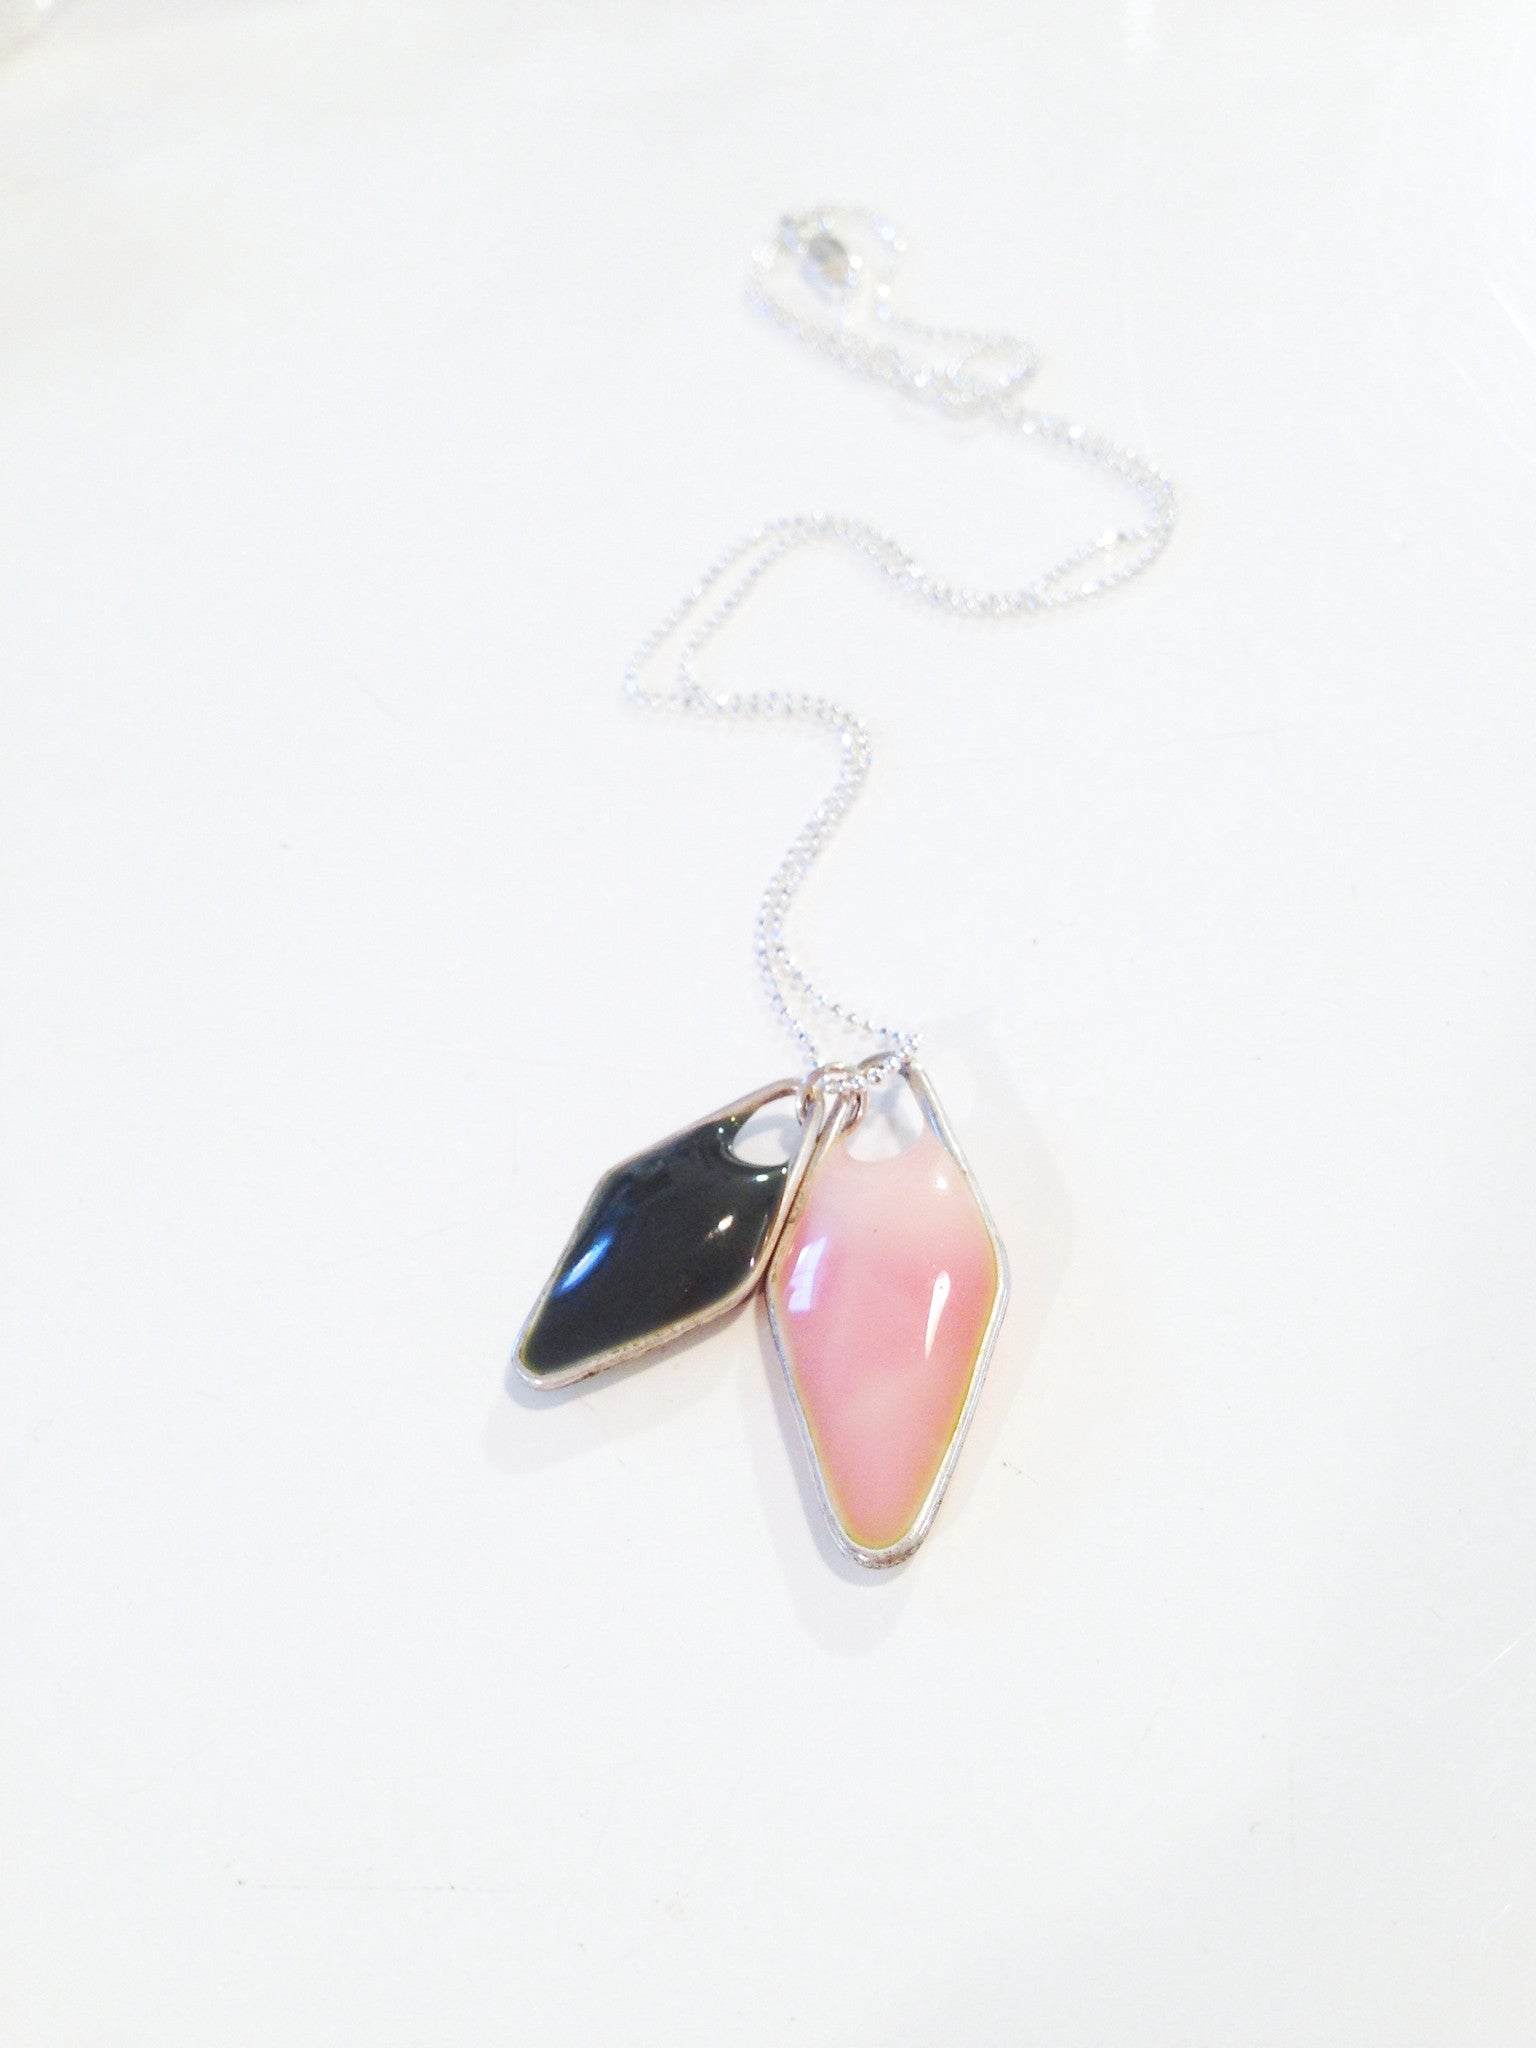 VERRE GLASS AND STERLING SILVER DOUBLE NECKLACE - PINK AND GREY